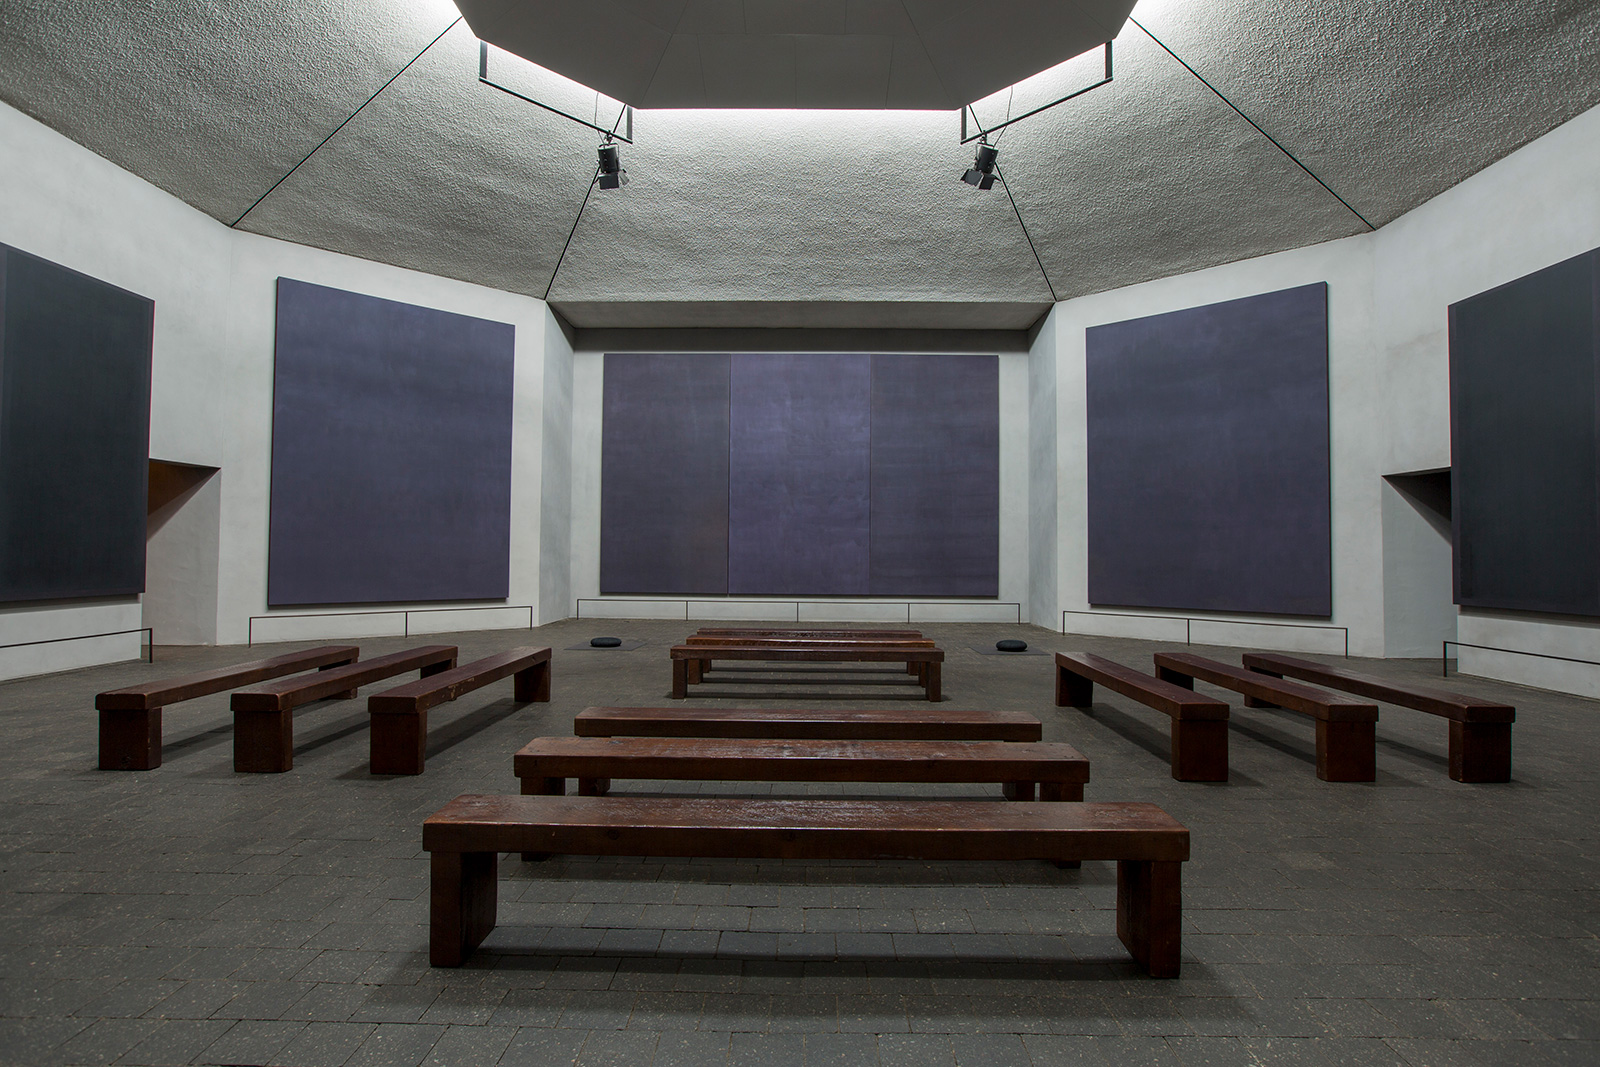 Rothko Chapel in Houston, Texas